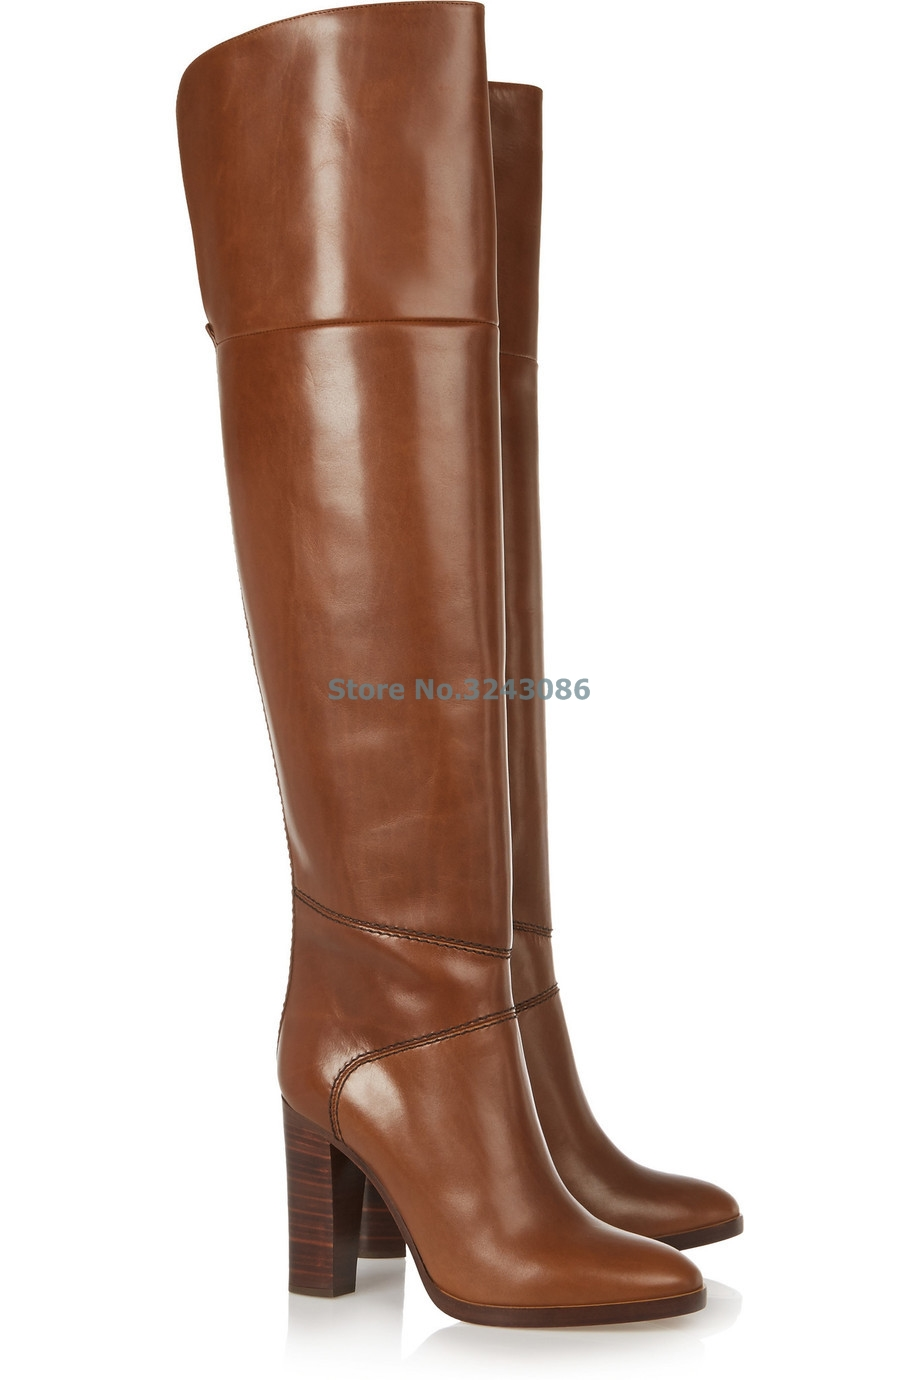 New Arrival Brown Round Toe Chunky High Heel Long Boots Classic Sewing Half Zipper Over The Knee Boots Basic Riding Boots    New Arrival Brown Round Toe Chunky High Heel Long Boots Classic Sewing Half Zipper Over The Knee Boots Basic Riding Boots